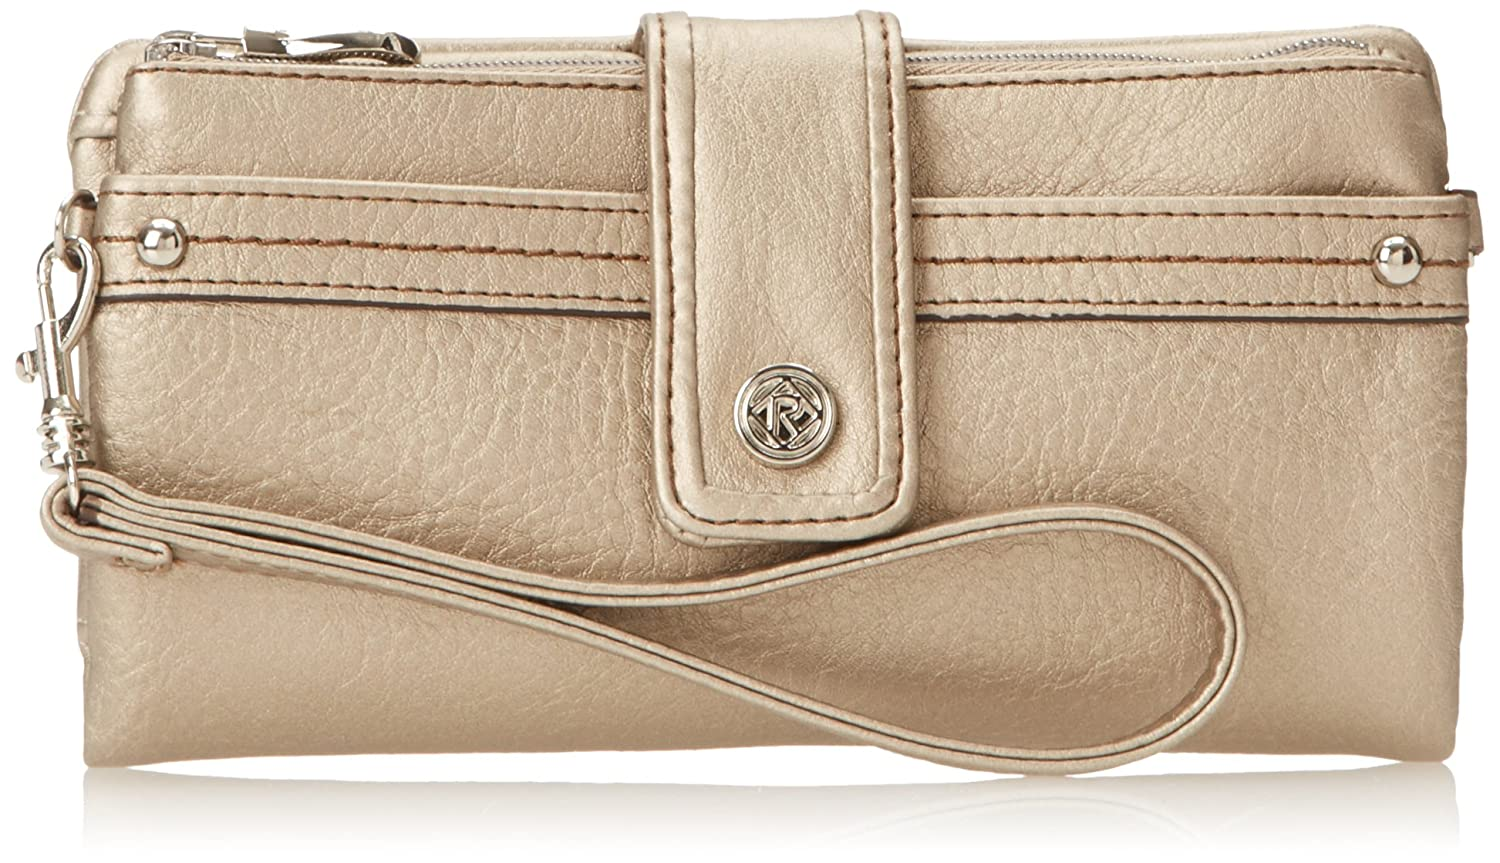 Relic Women's Vicky Tab Checkbook Wallet, Pewter, One Size 6pm Relic Handbags Vicky Tab Ckbk